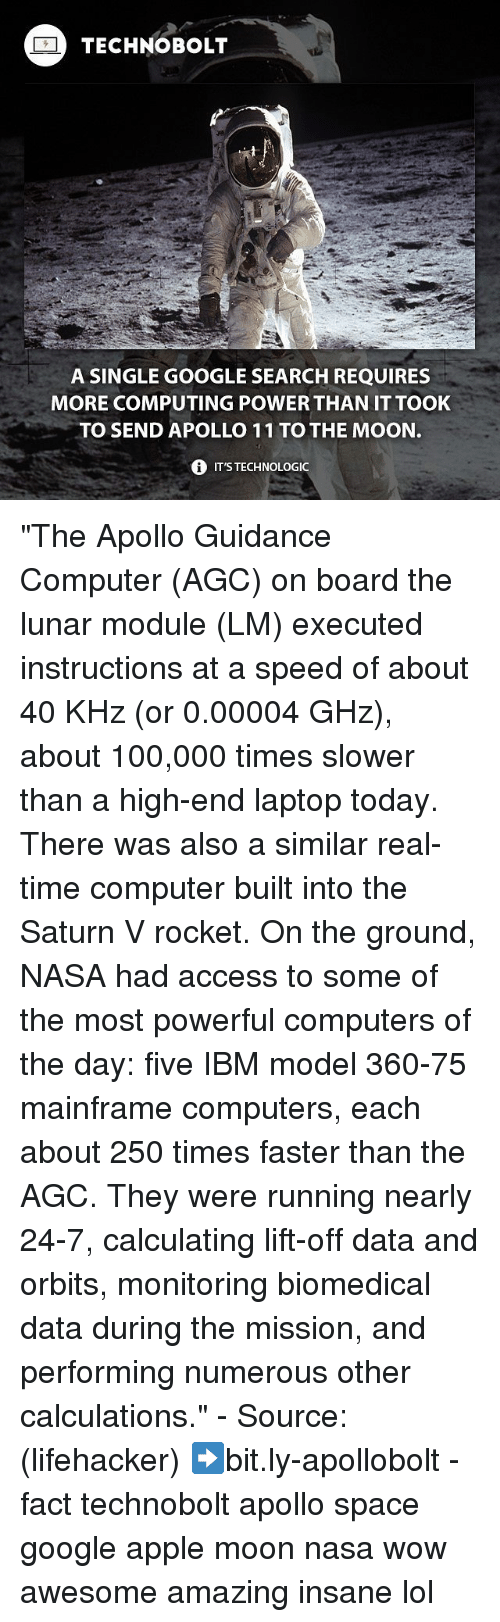 "Apple, Computers, and Google: TECHNO BOLT  A SINGLE GOOGLE SEARCH REQUIRES  MORE COMPUTING POWER THAN IT TOOK  TO SEND APOLLO 11 TO THE MOON.  i ITSTECHNOLOGIC ""The Apollo Guidance Computer (AGC) on board the lunar module (LM) executed instructions at a speed of about 40 KHz (or 0.00004 GHz), about 100,000 times slower than a high-end laptop today. There was also a similar real-time computer built into the Saturn V rocket. On the ground, NASA had access to some of the most powerful computers of the day: five IBM model 360-75 mainframe computers, each about 250 times faster than the AGC. They were running nearly 24-7, calculating lift-off data and orbits, monitoring biomedical data during the mission, and performing numerous other calculations."" - Source: (lifehacker) ➡bit.ly-apollobolt - fact technobolt apollo space google apple moon nasa wow awesome amazing insane lol"